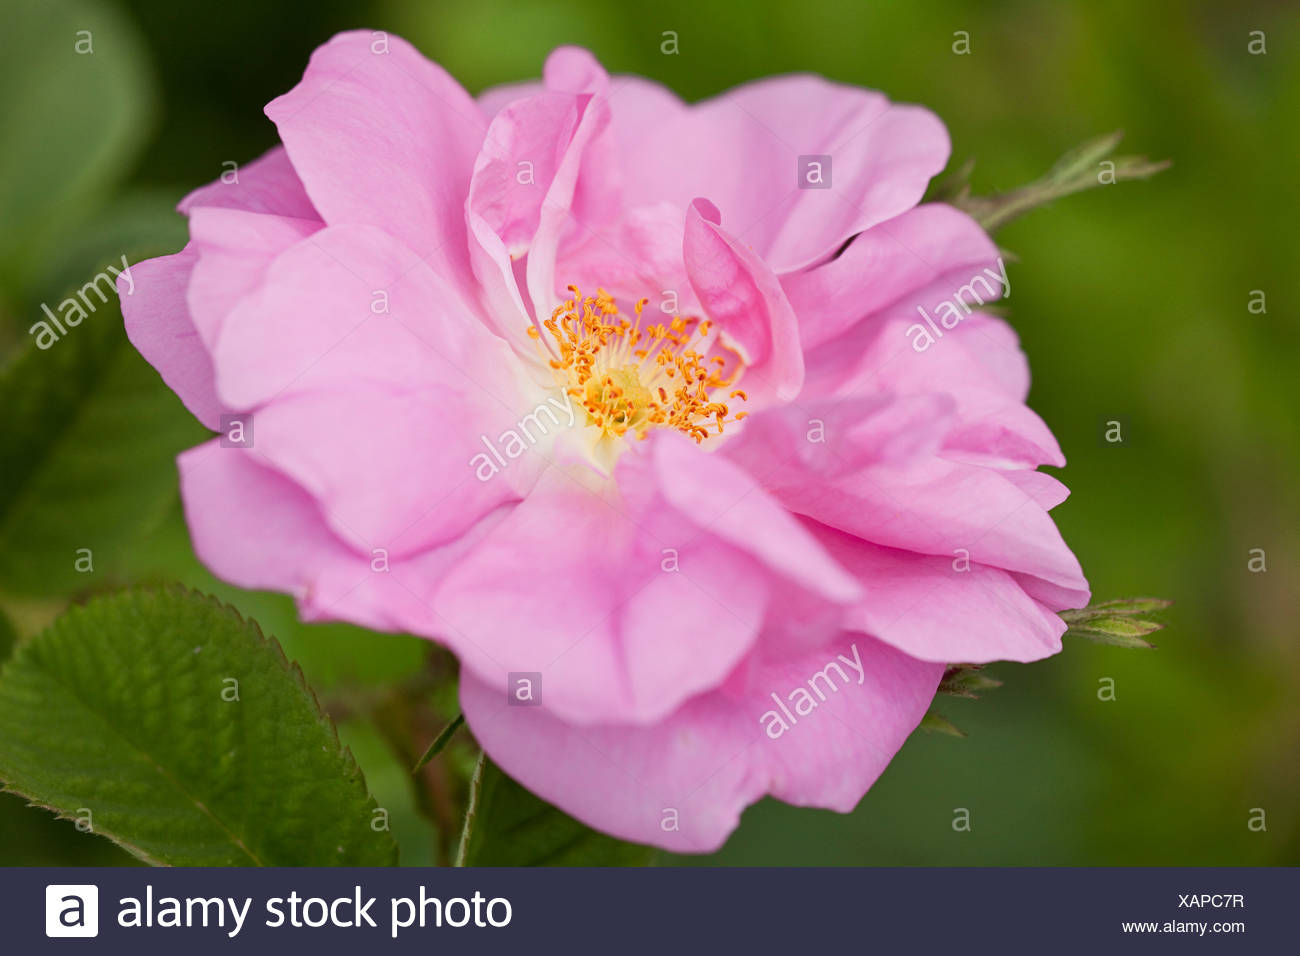 Blooming flower of a Damask Roses (Rosa damascena) in the Valley of Roses, Dades Valley, southern Morocco, Morocco, Africa - Stock Image